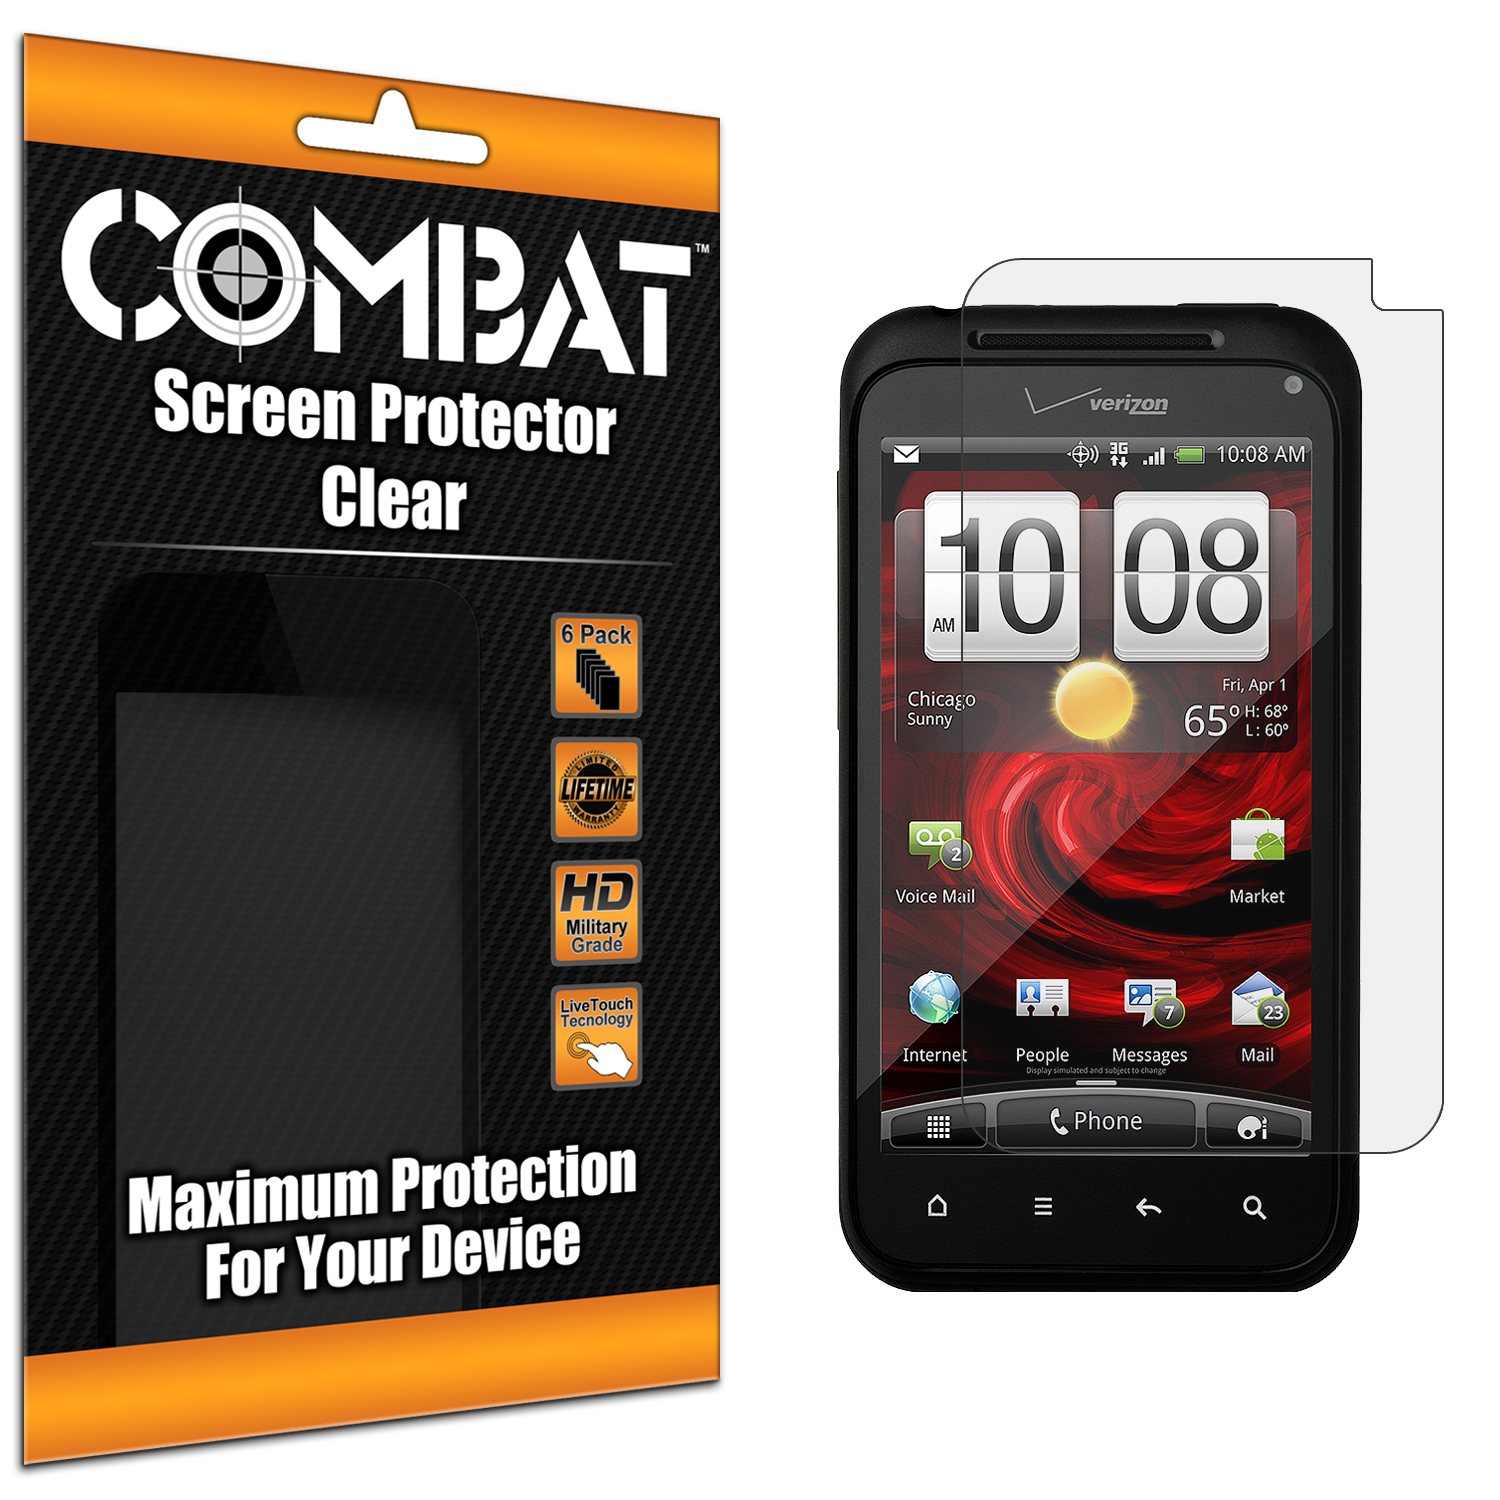 HTC Droid Incredible 2 6350 Combat 6 Pack HD Clear Screen Protector